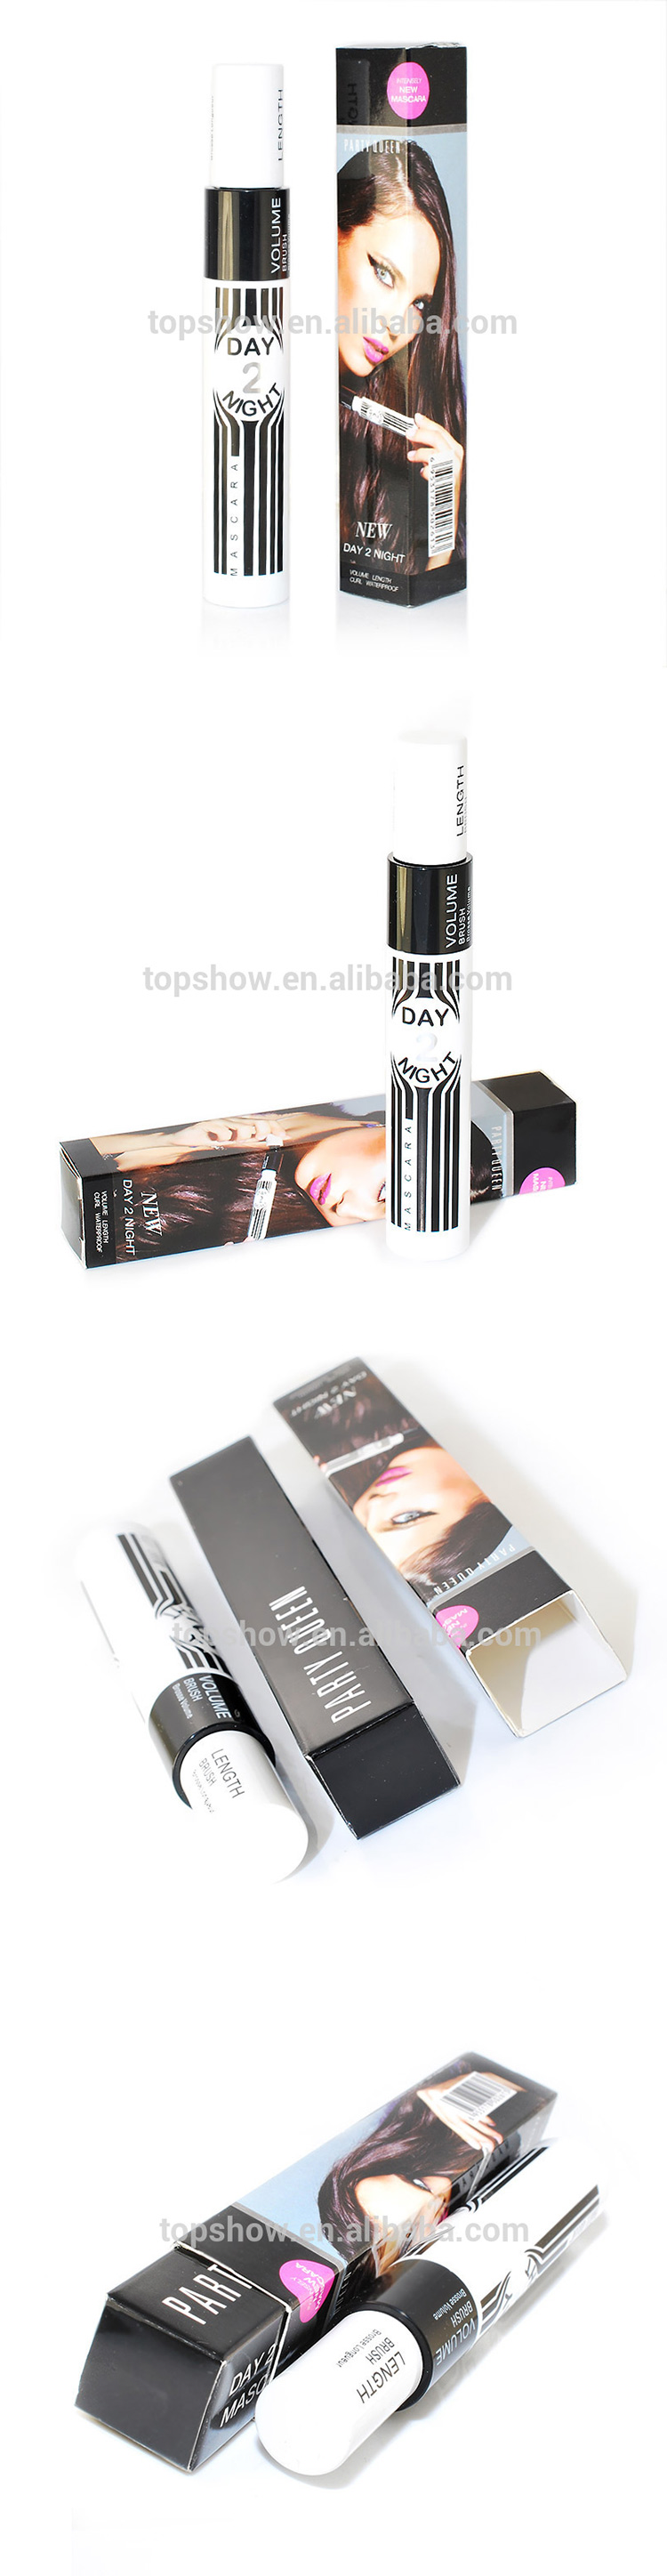 2015 New Party Queen Ultimate Combination 2 in 1 Fiber Mascara